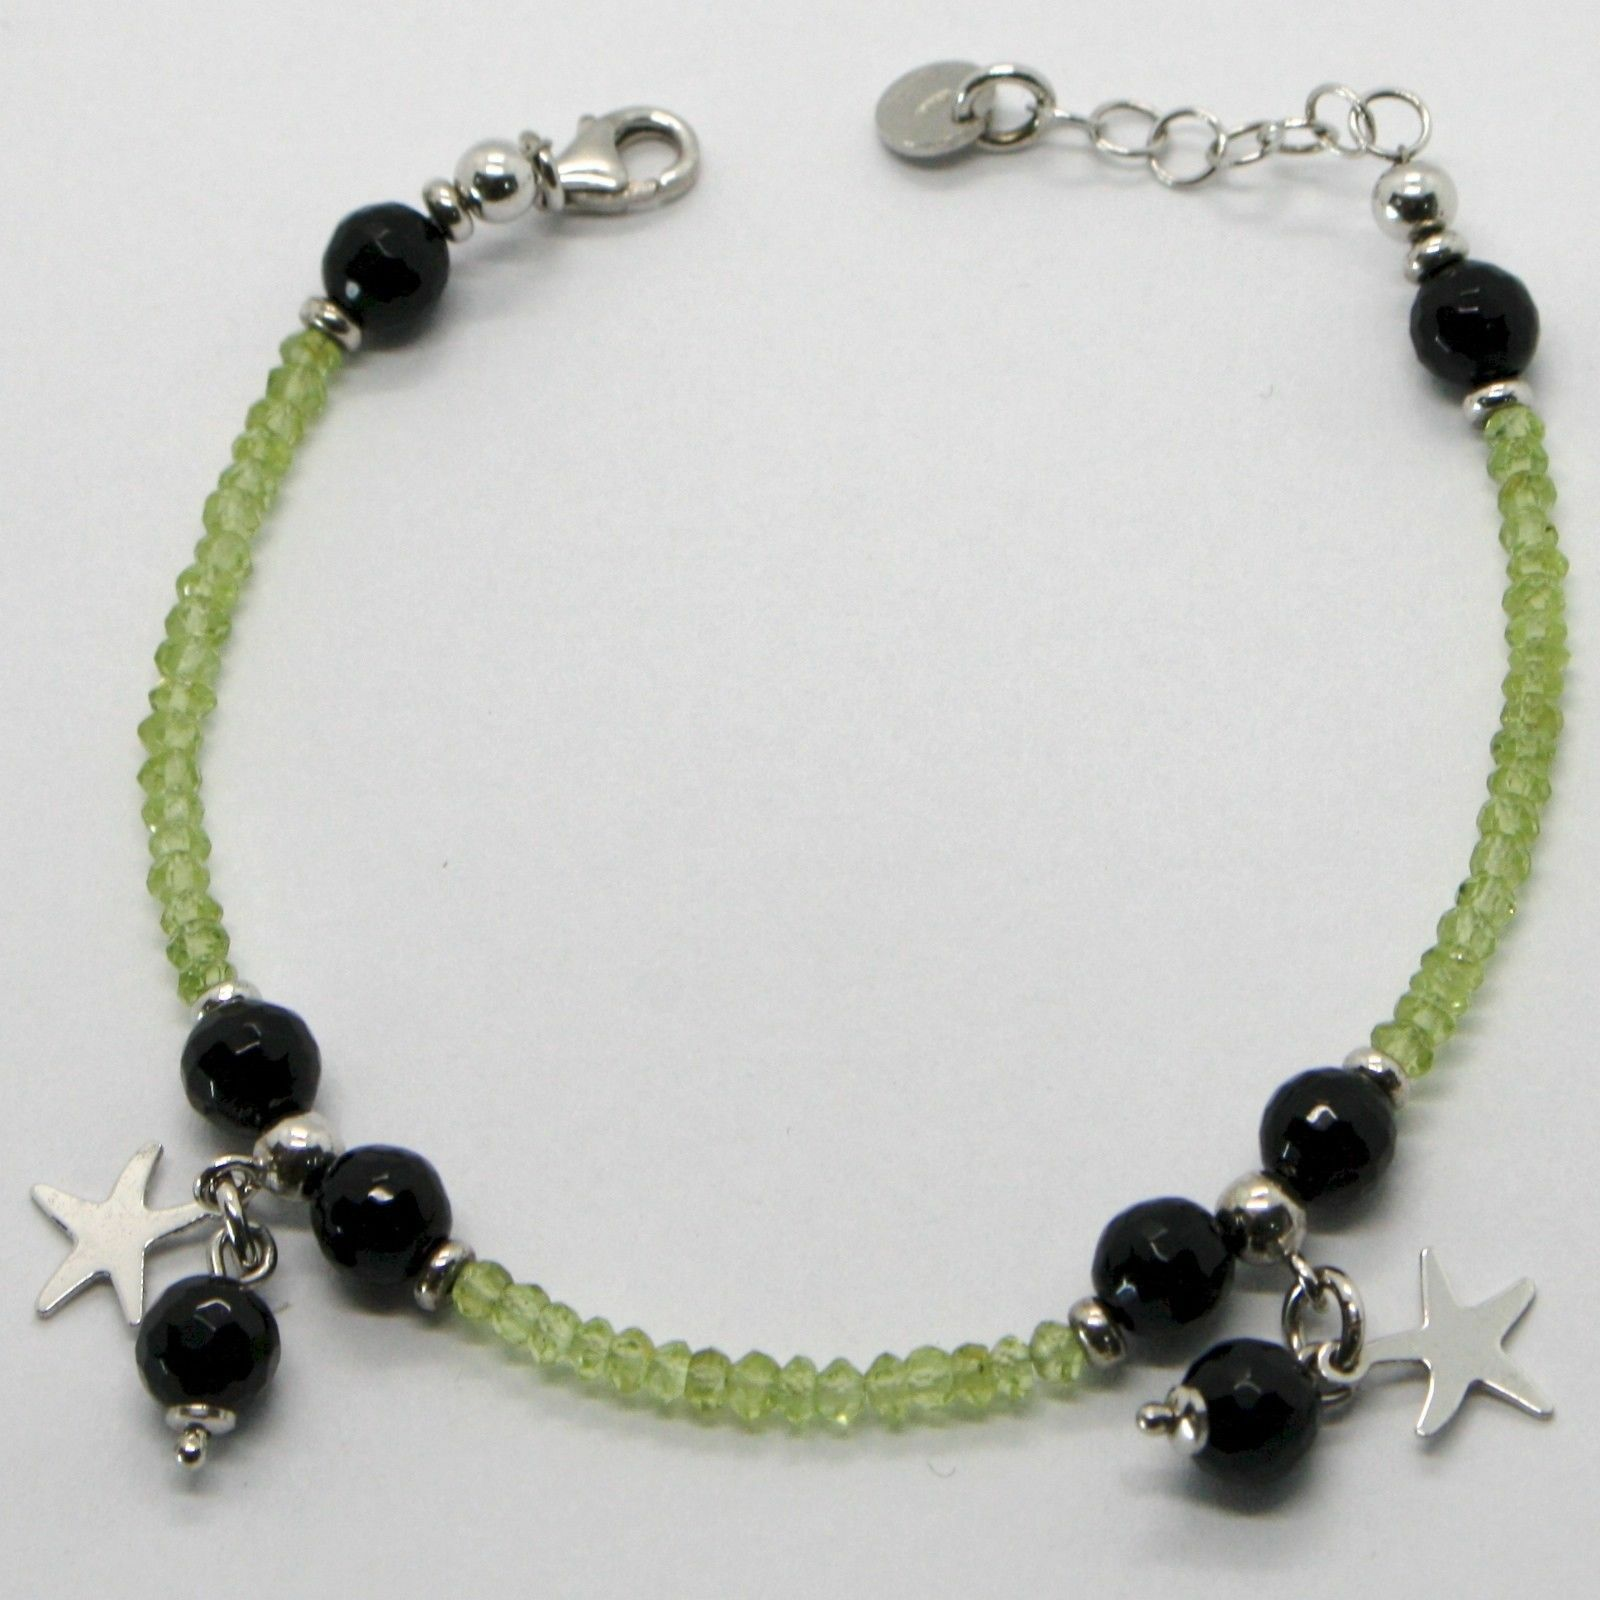 Silver 925 Bracelet with Peridot Green Onyx & Charms a Stars